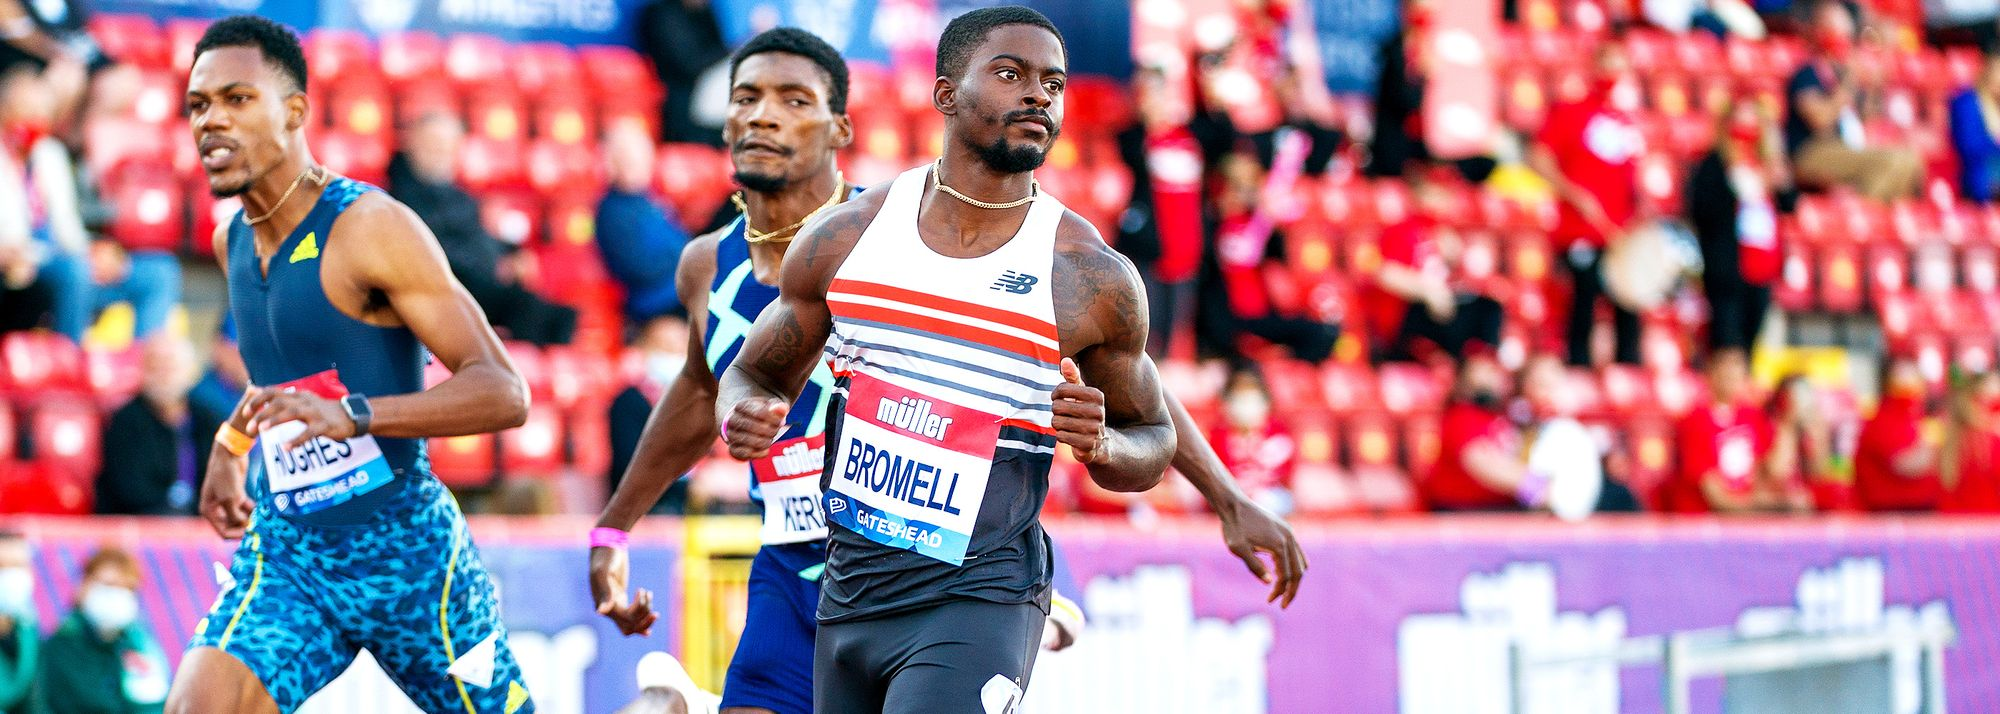 Bouncing back from his first 100m defeat since 2019, Trayvon Bromell won the 100m at the Wanda Diamond League meeting in Gateshead on Tuesday evening (13) to re-establish himself as the favourite for gold at the upcoming Tokyo Olympics.